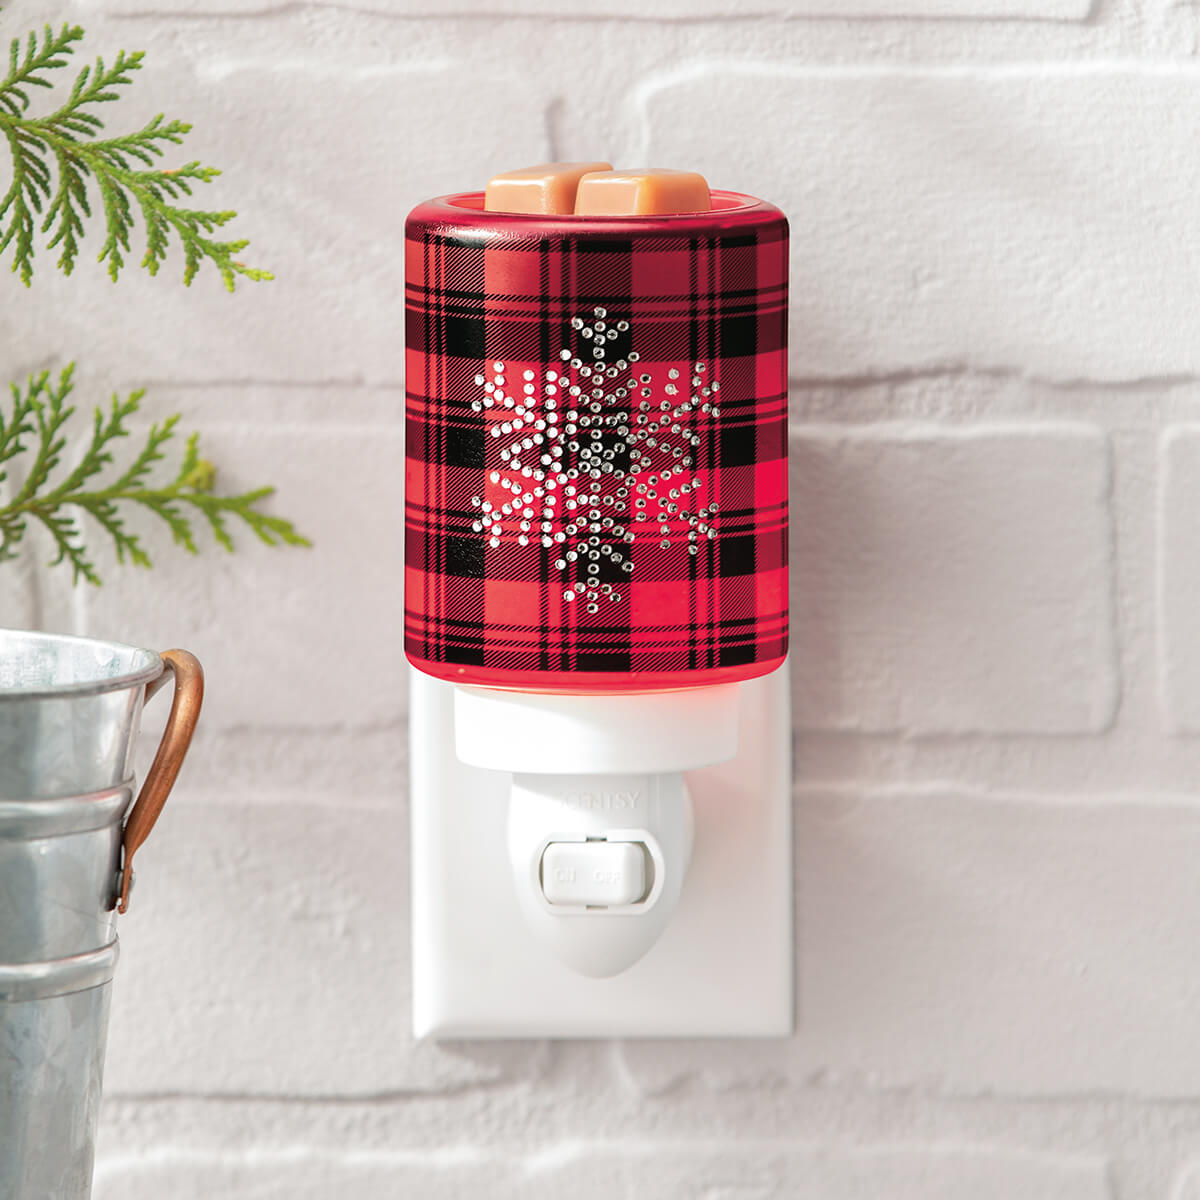 Scentsy Stocking Warmer